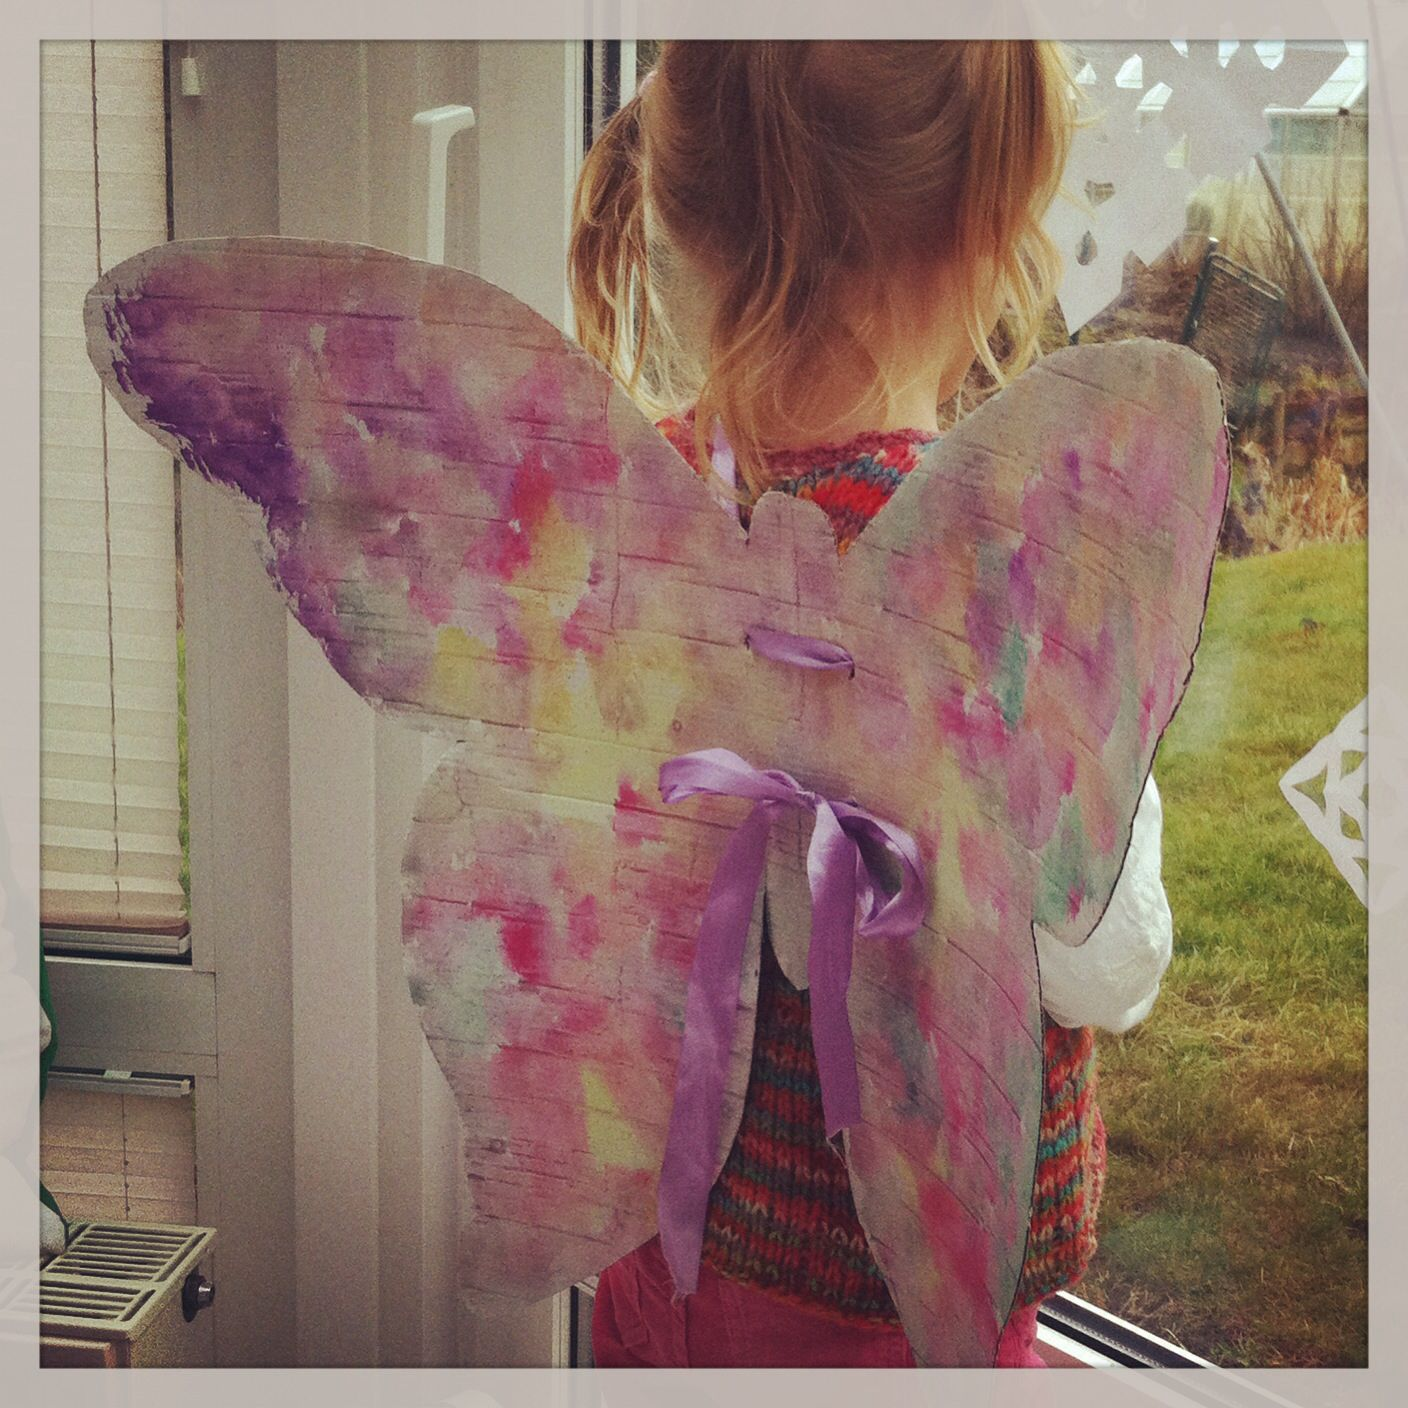 Butterflywings made from cardboard and watercolours. Schmetterlingsflügel aus Karton, bemalt mit Wasserfarbe.